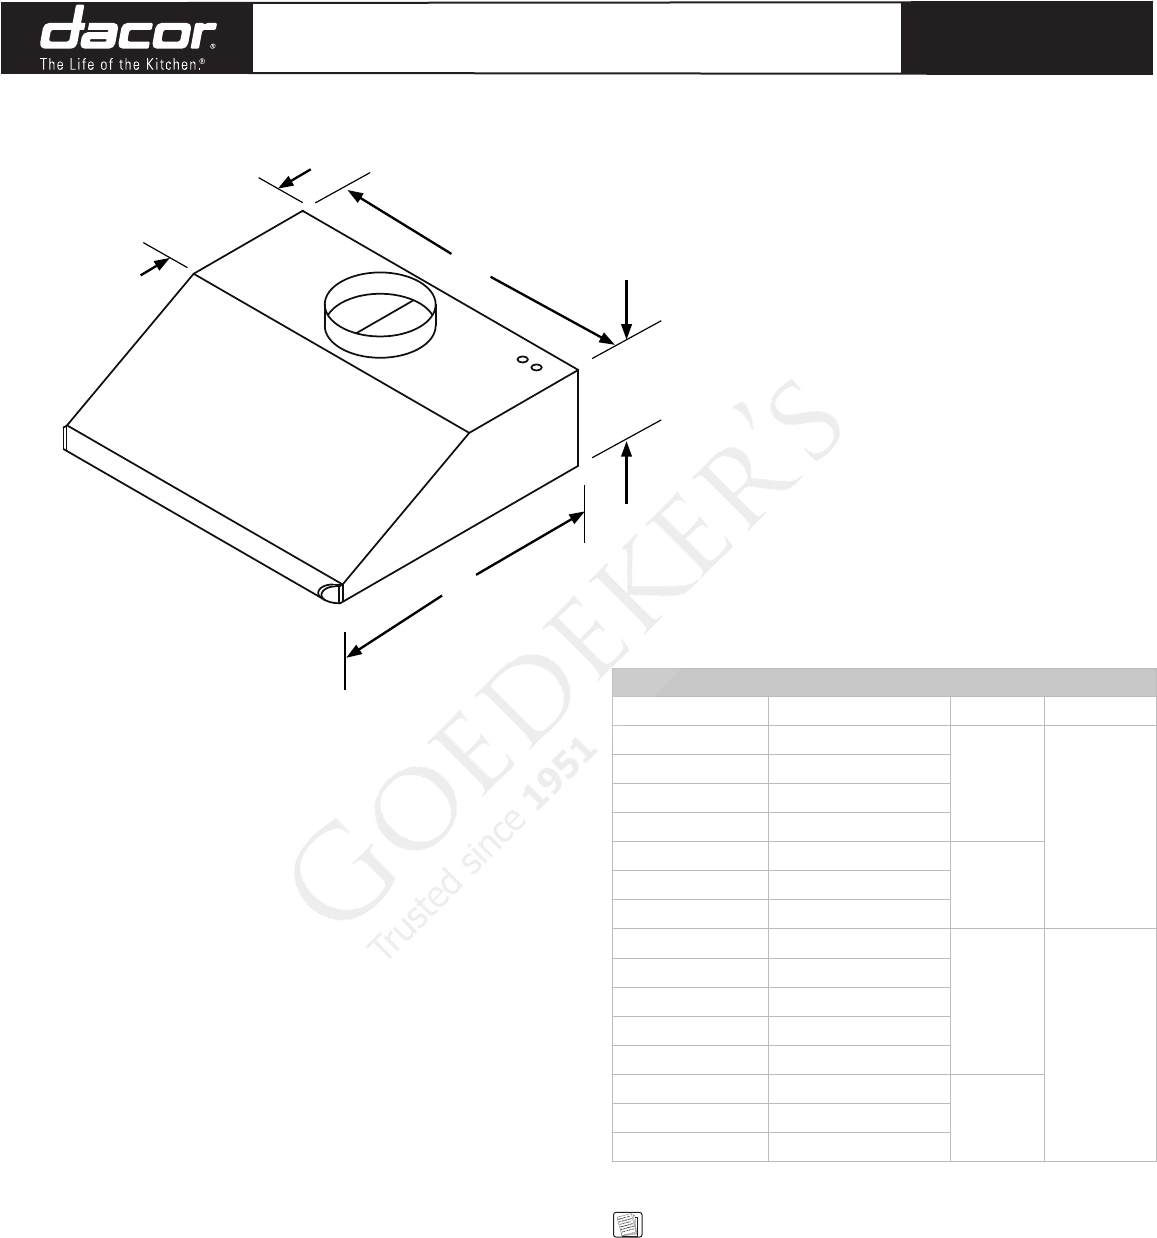 Dacor Ventilation Hood Ehr User Guide Manualsonlinecom Wiring Diagram Planning